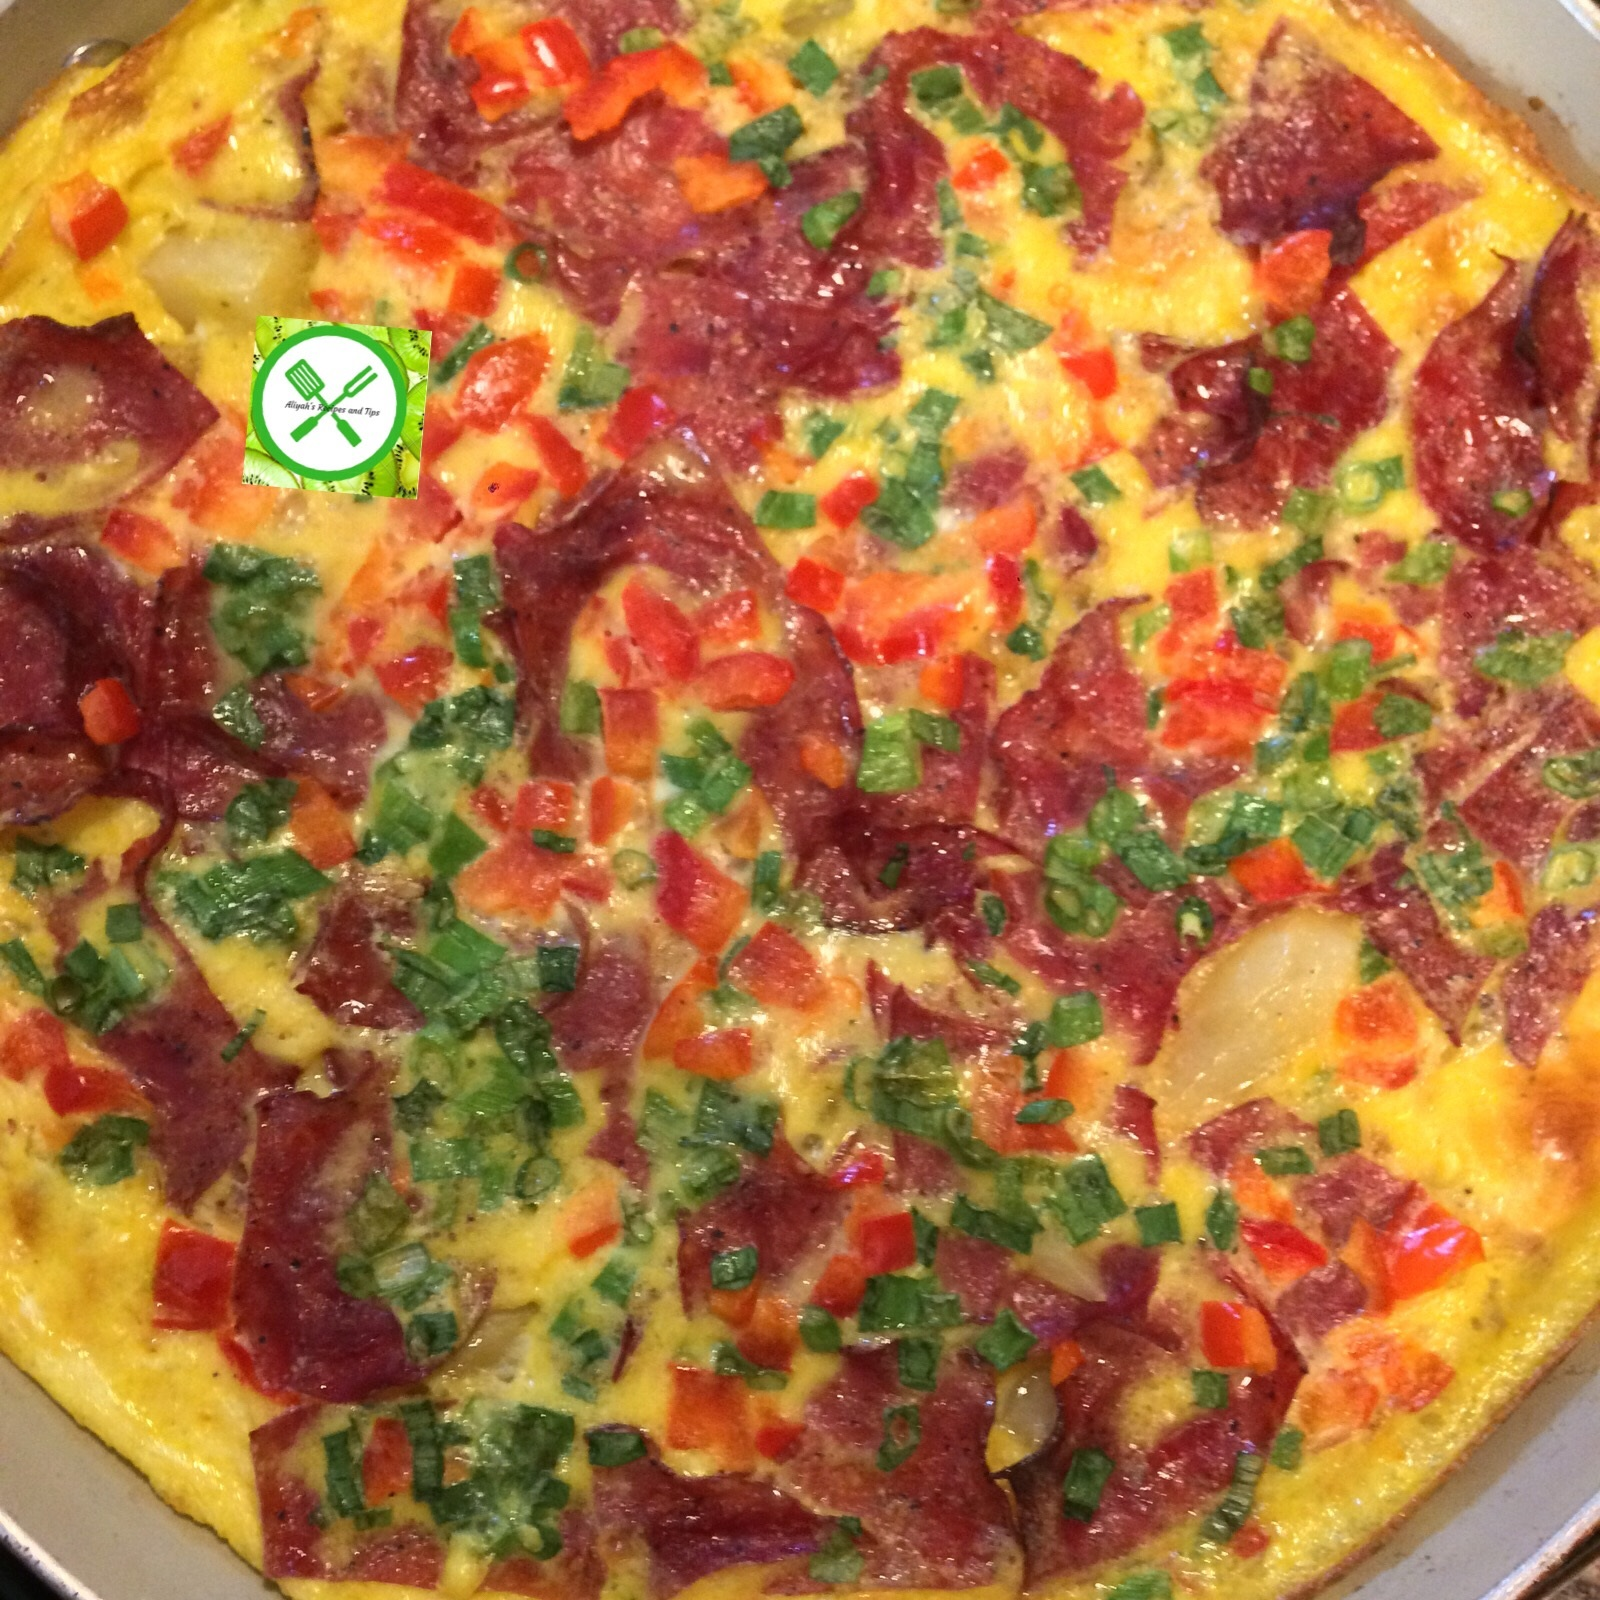 Potatoes and beef omelette